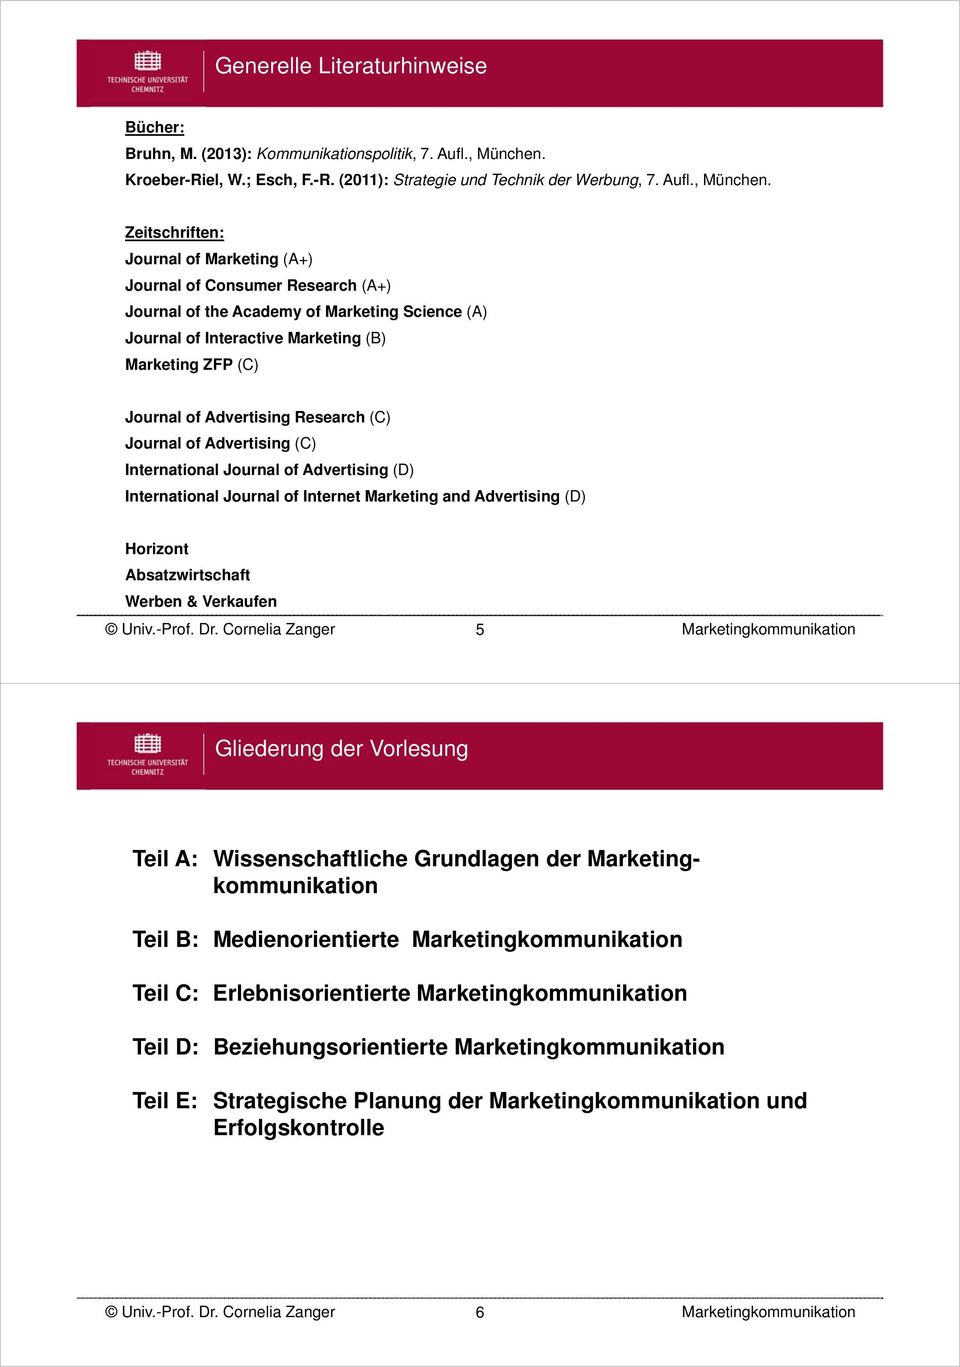 Zeitschriften: Journal of Marketing (A+) Journal of Consumer Research (A+) Journal of the Academy of Marketing Science (A) Journal of Interactive Marketing (B) Marketing ZFP (C) Journal of